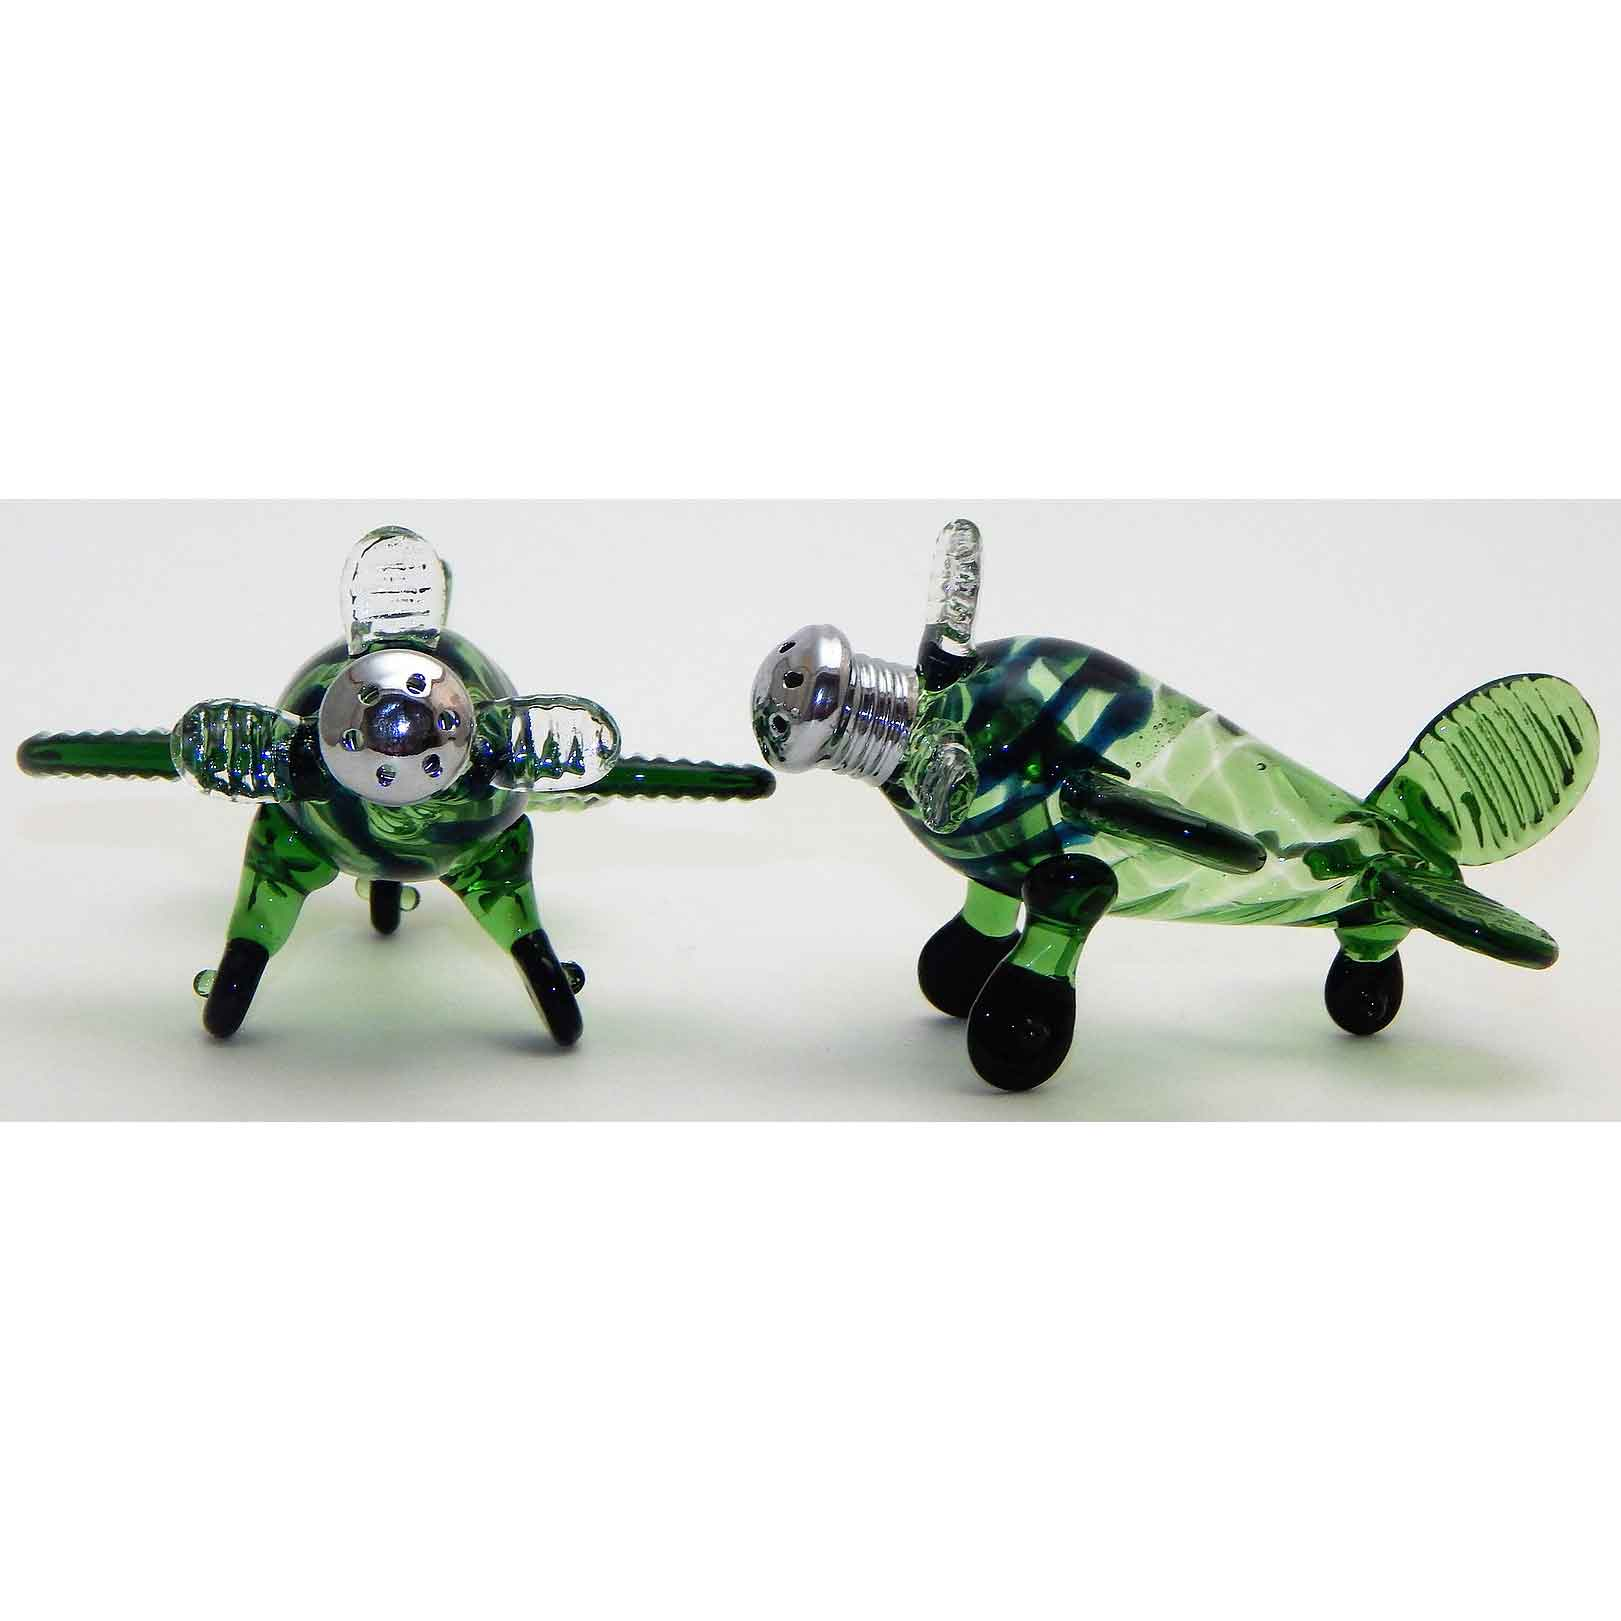 Green Airplane Blown Glass Salt and Pepper Shaker 206 by Four Sisters Art Glass